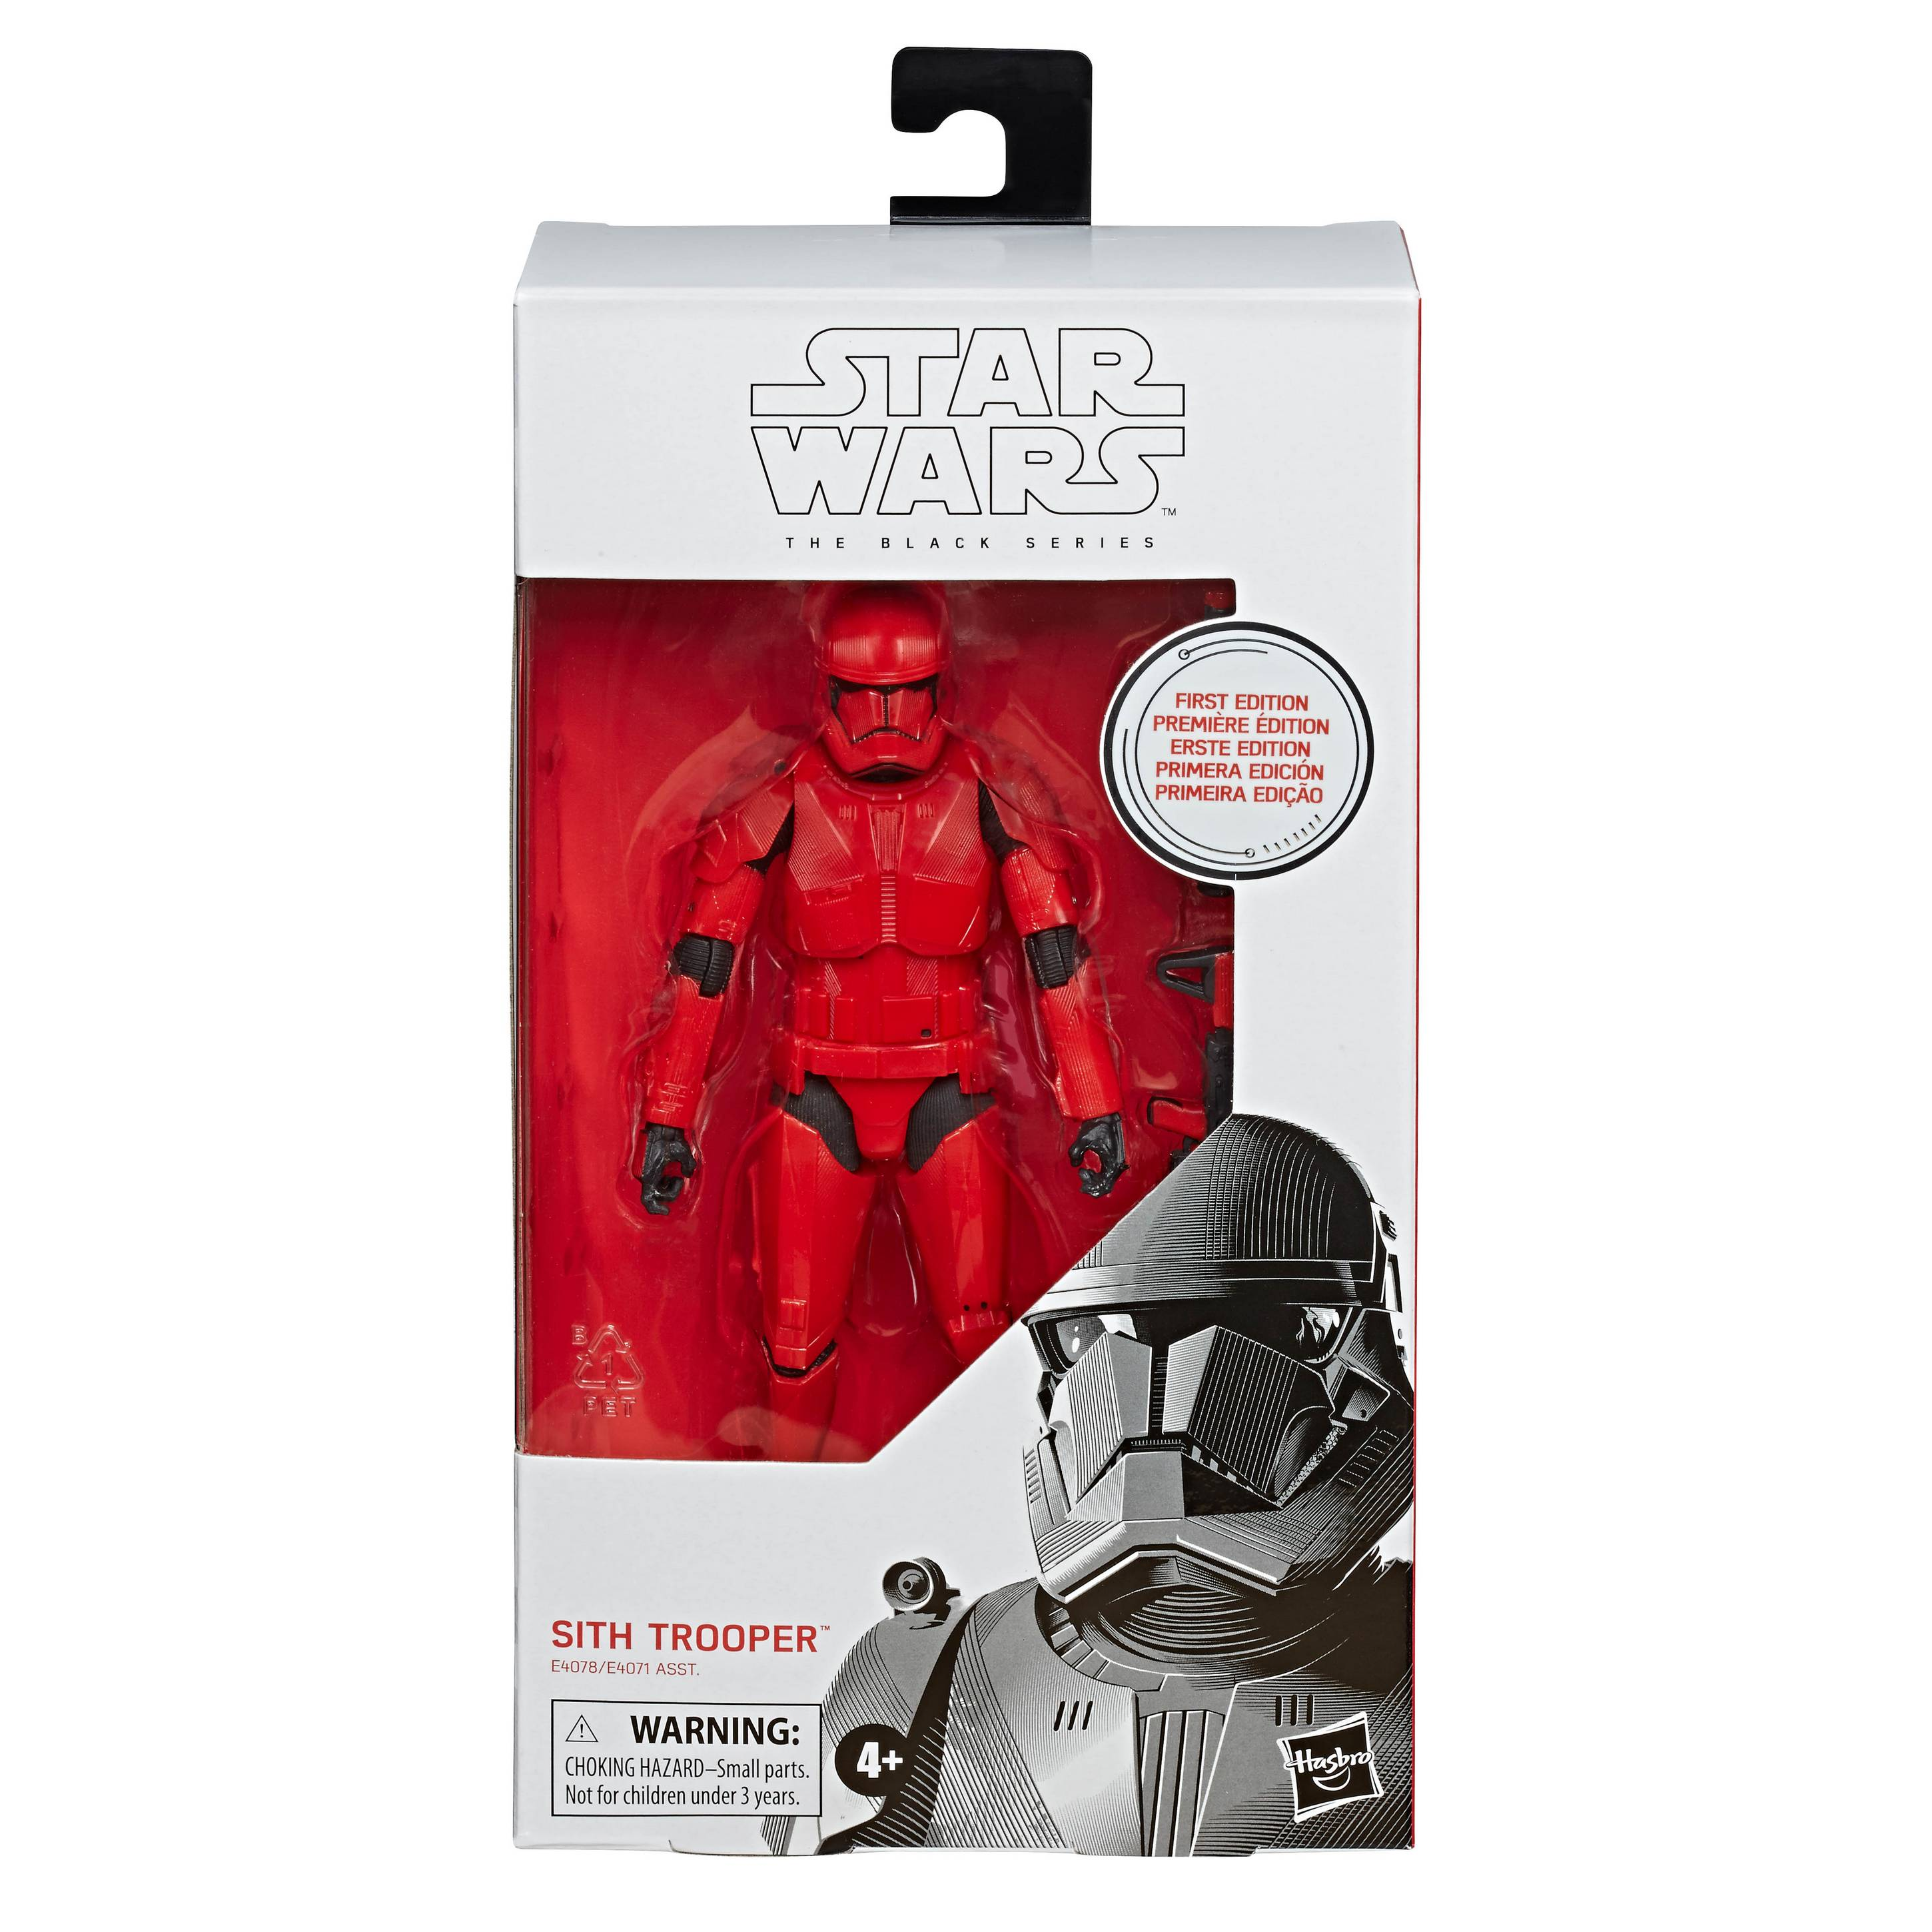 STAR-WARS-THE-BLACK-SERIES-6-INCH-SITH-TROOPER-Figure-First-Edition-pckging.jpg